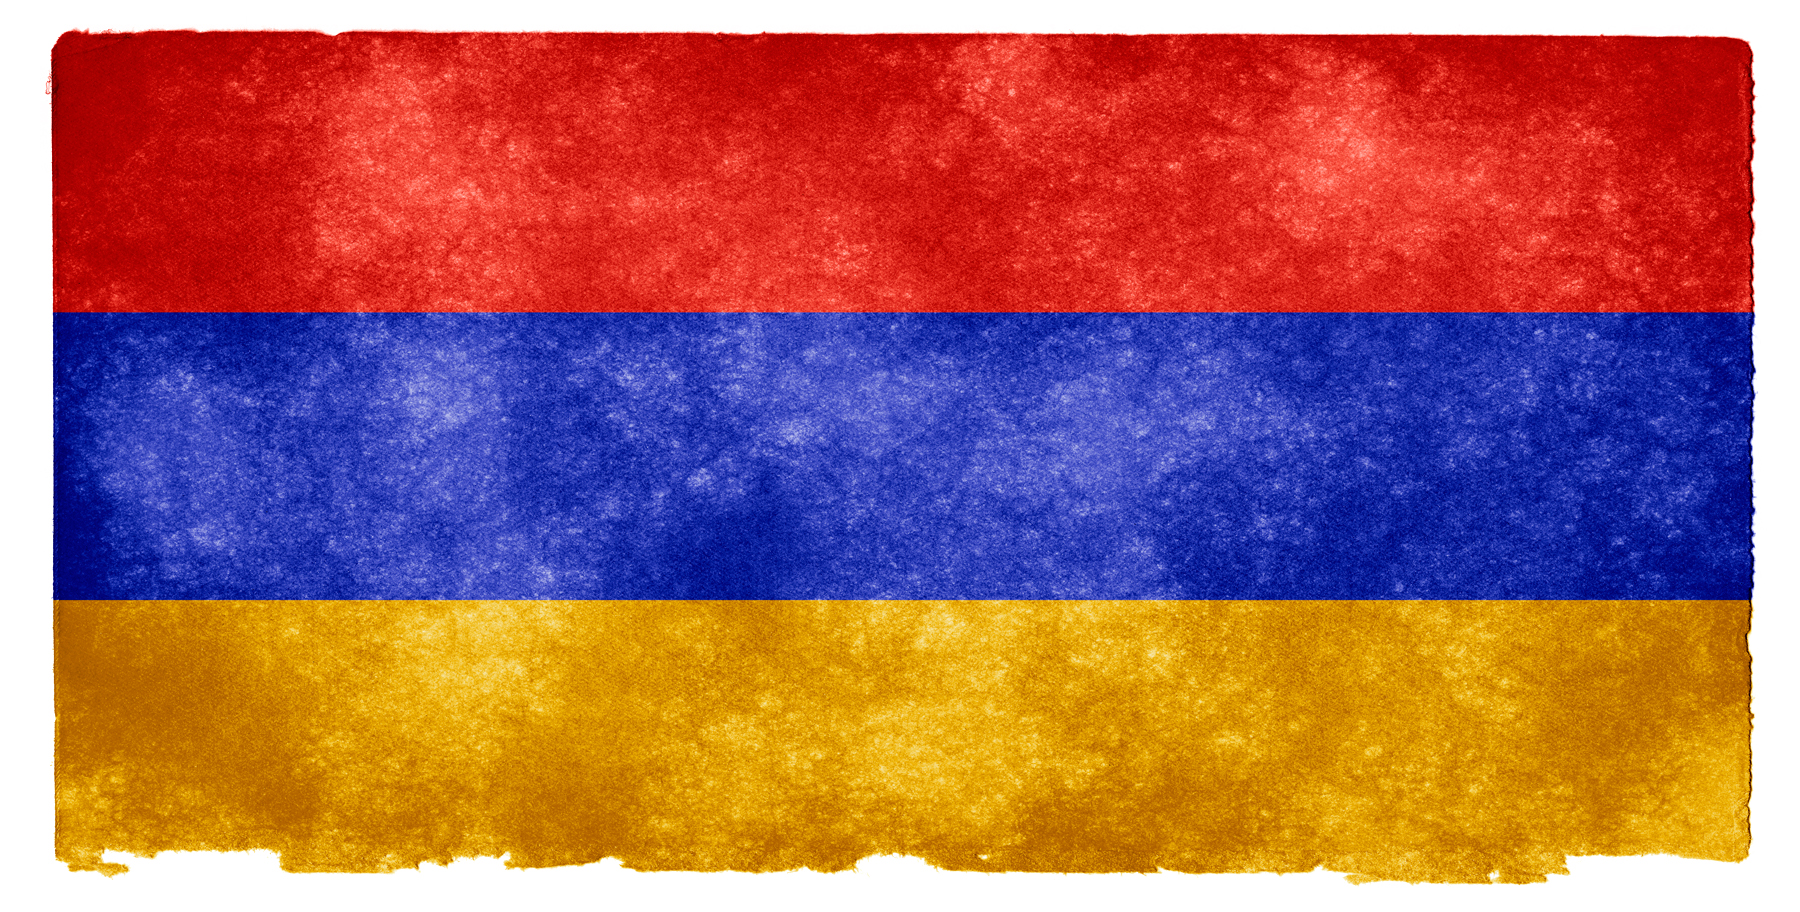 Armenia Grunge Flag, Aged, Resource, Old, Page, HQ Photo